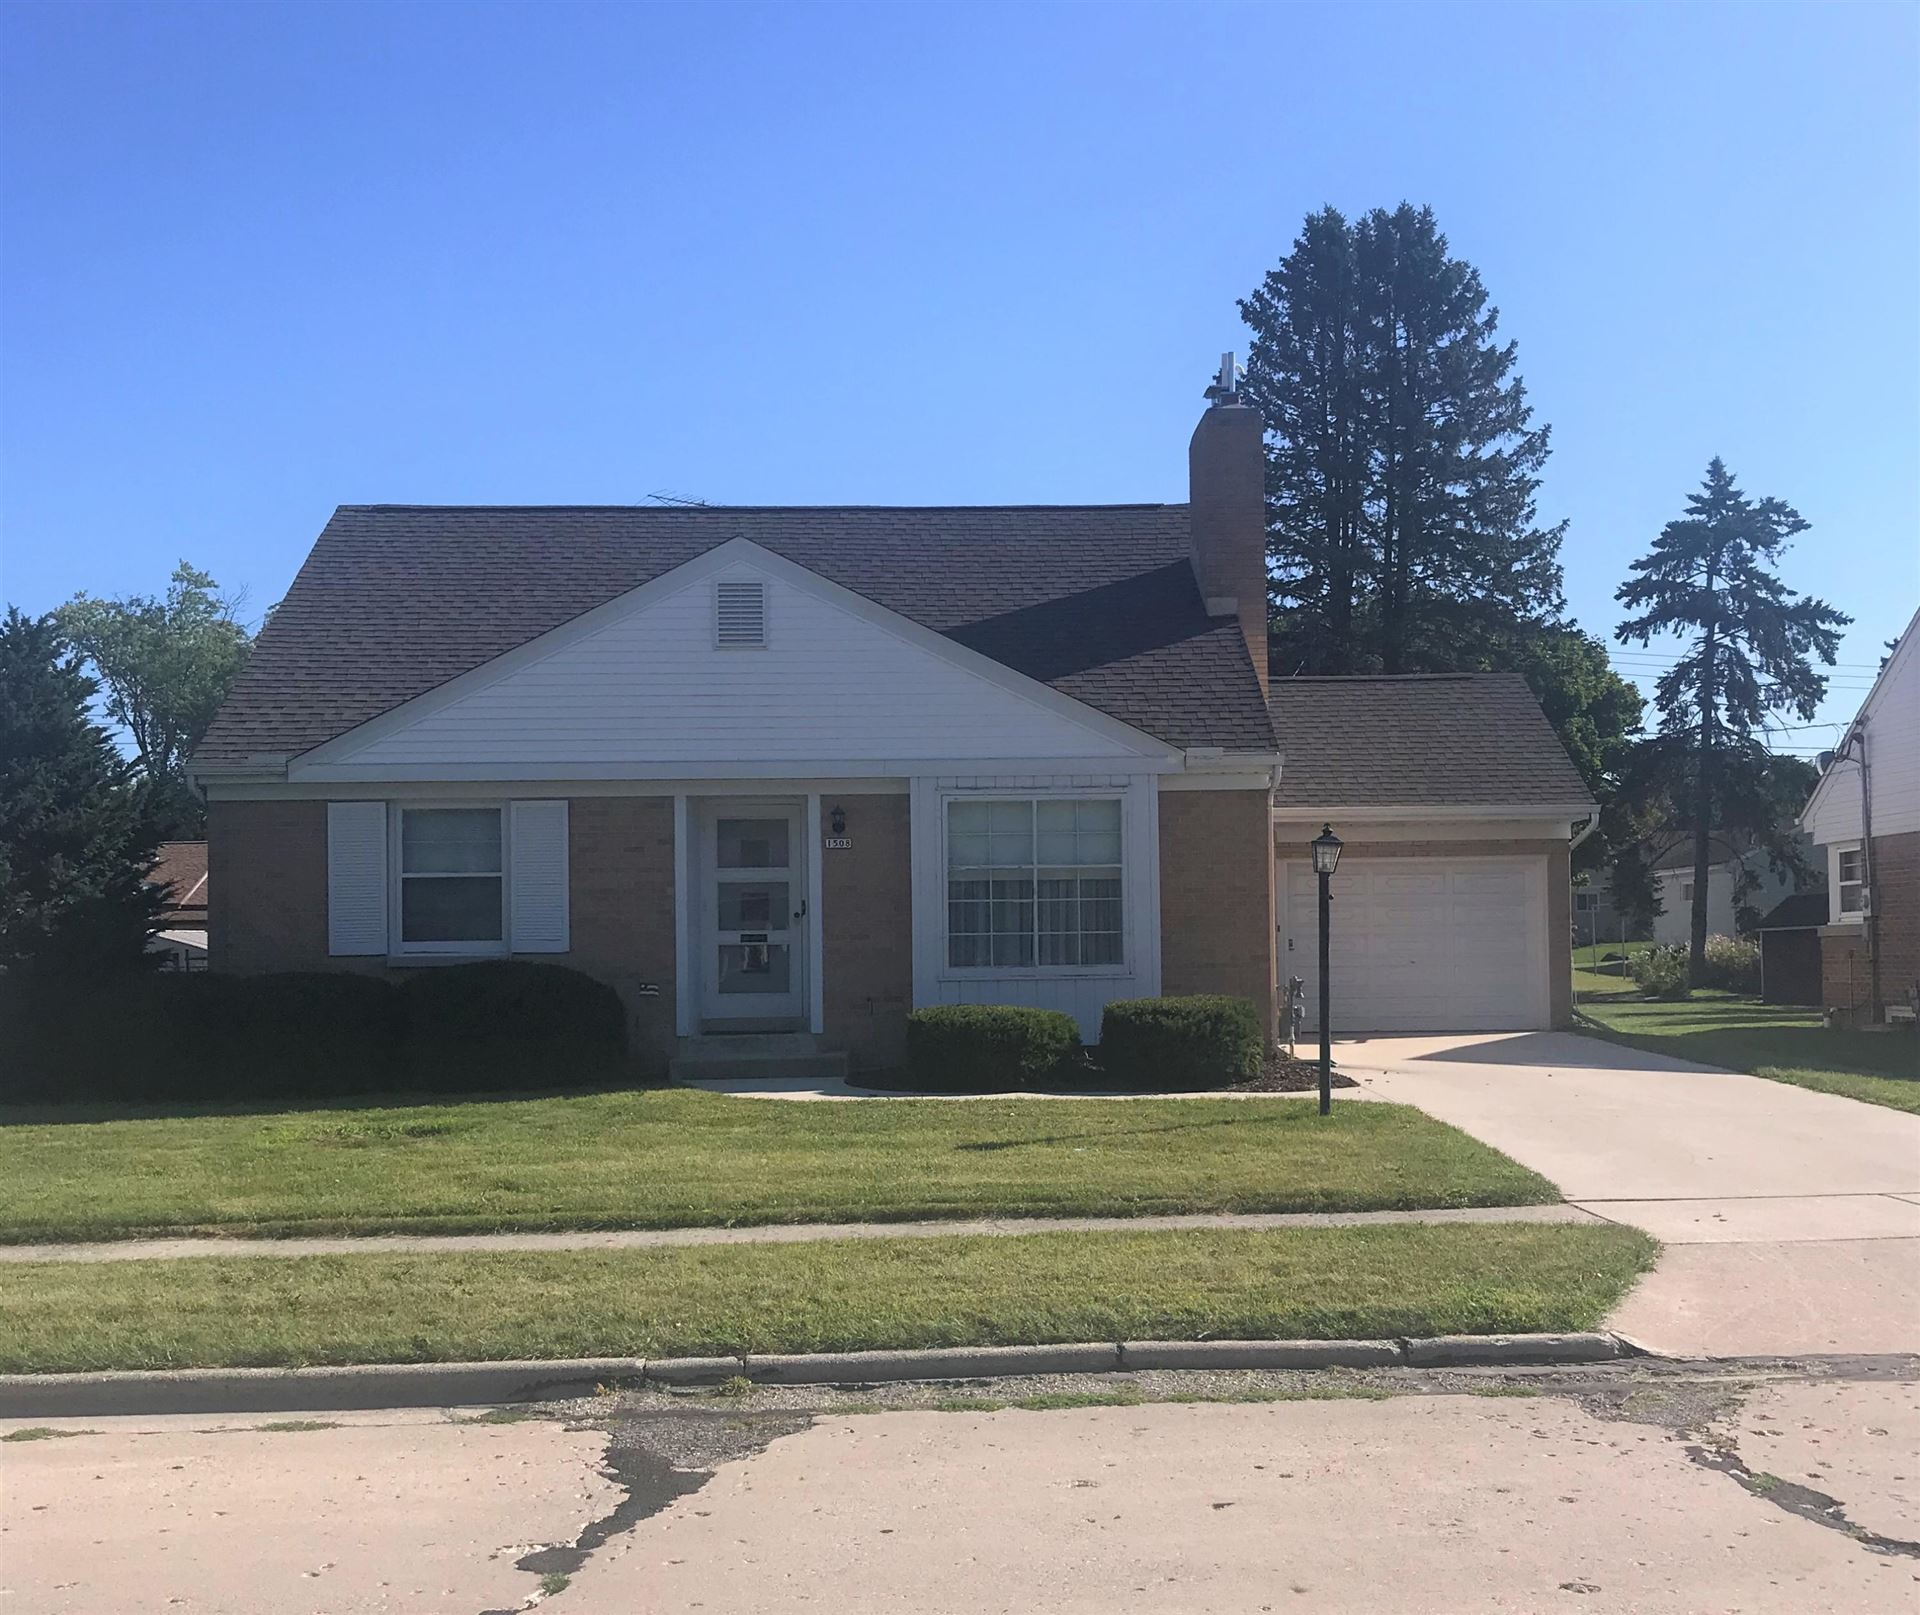 1508 Reed Ave, Manitowoc, WI 54220 - #: 1709587